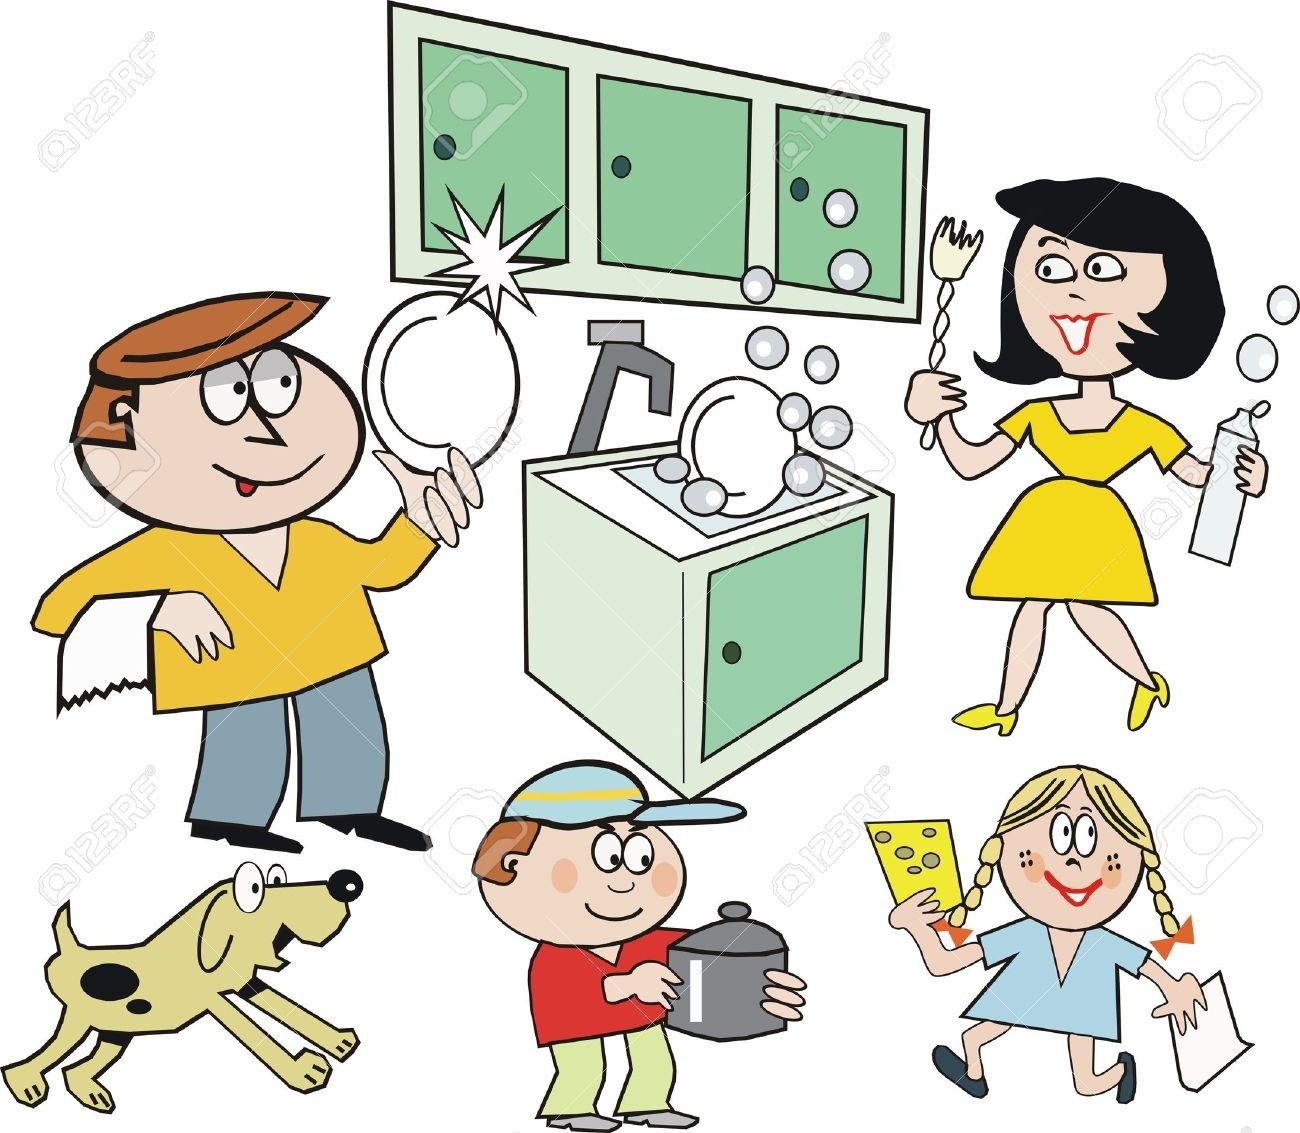 Chore clipart household chore. Within house chores free